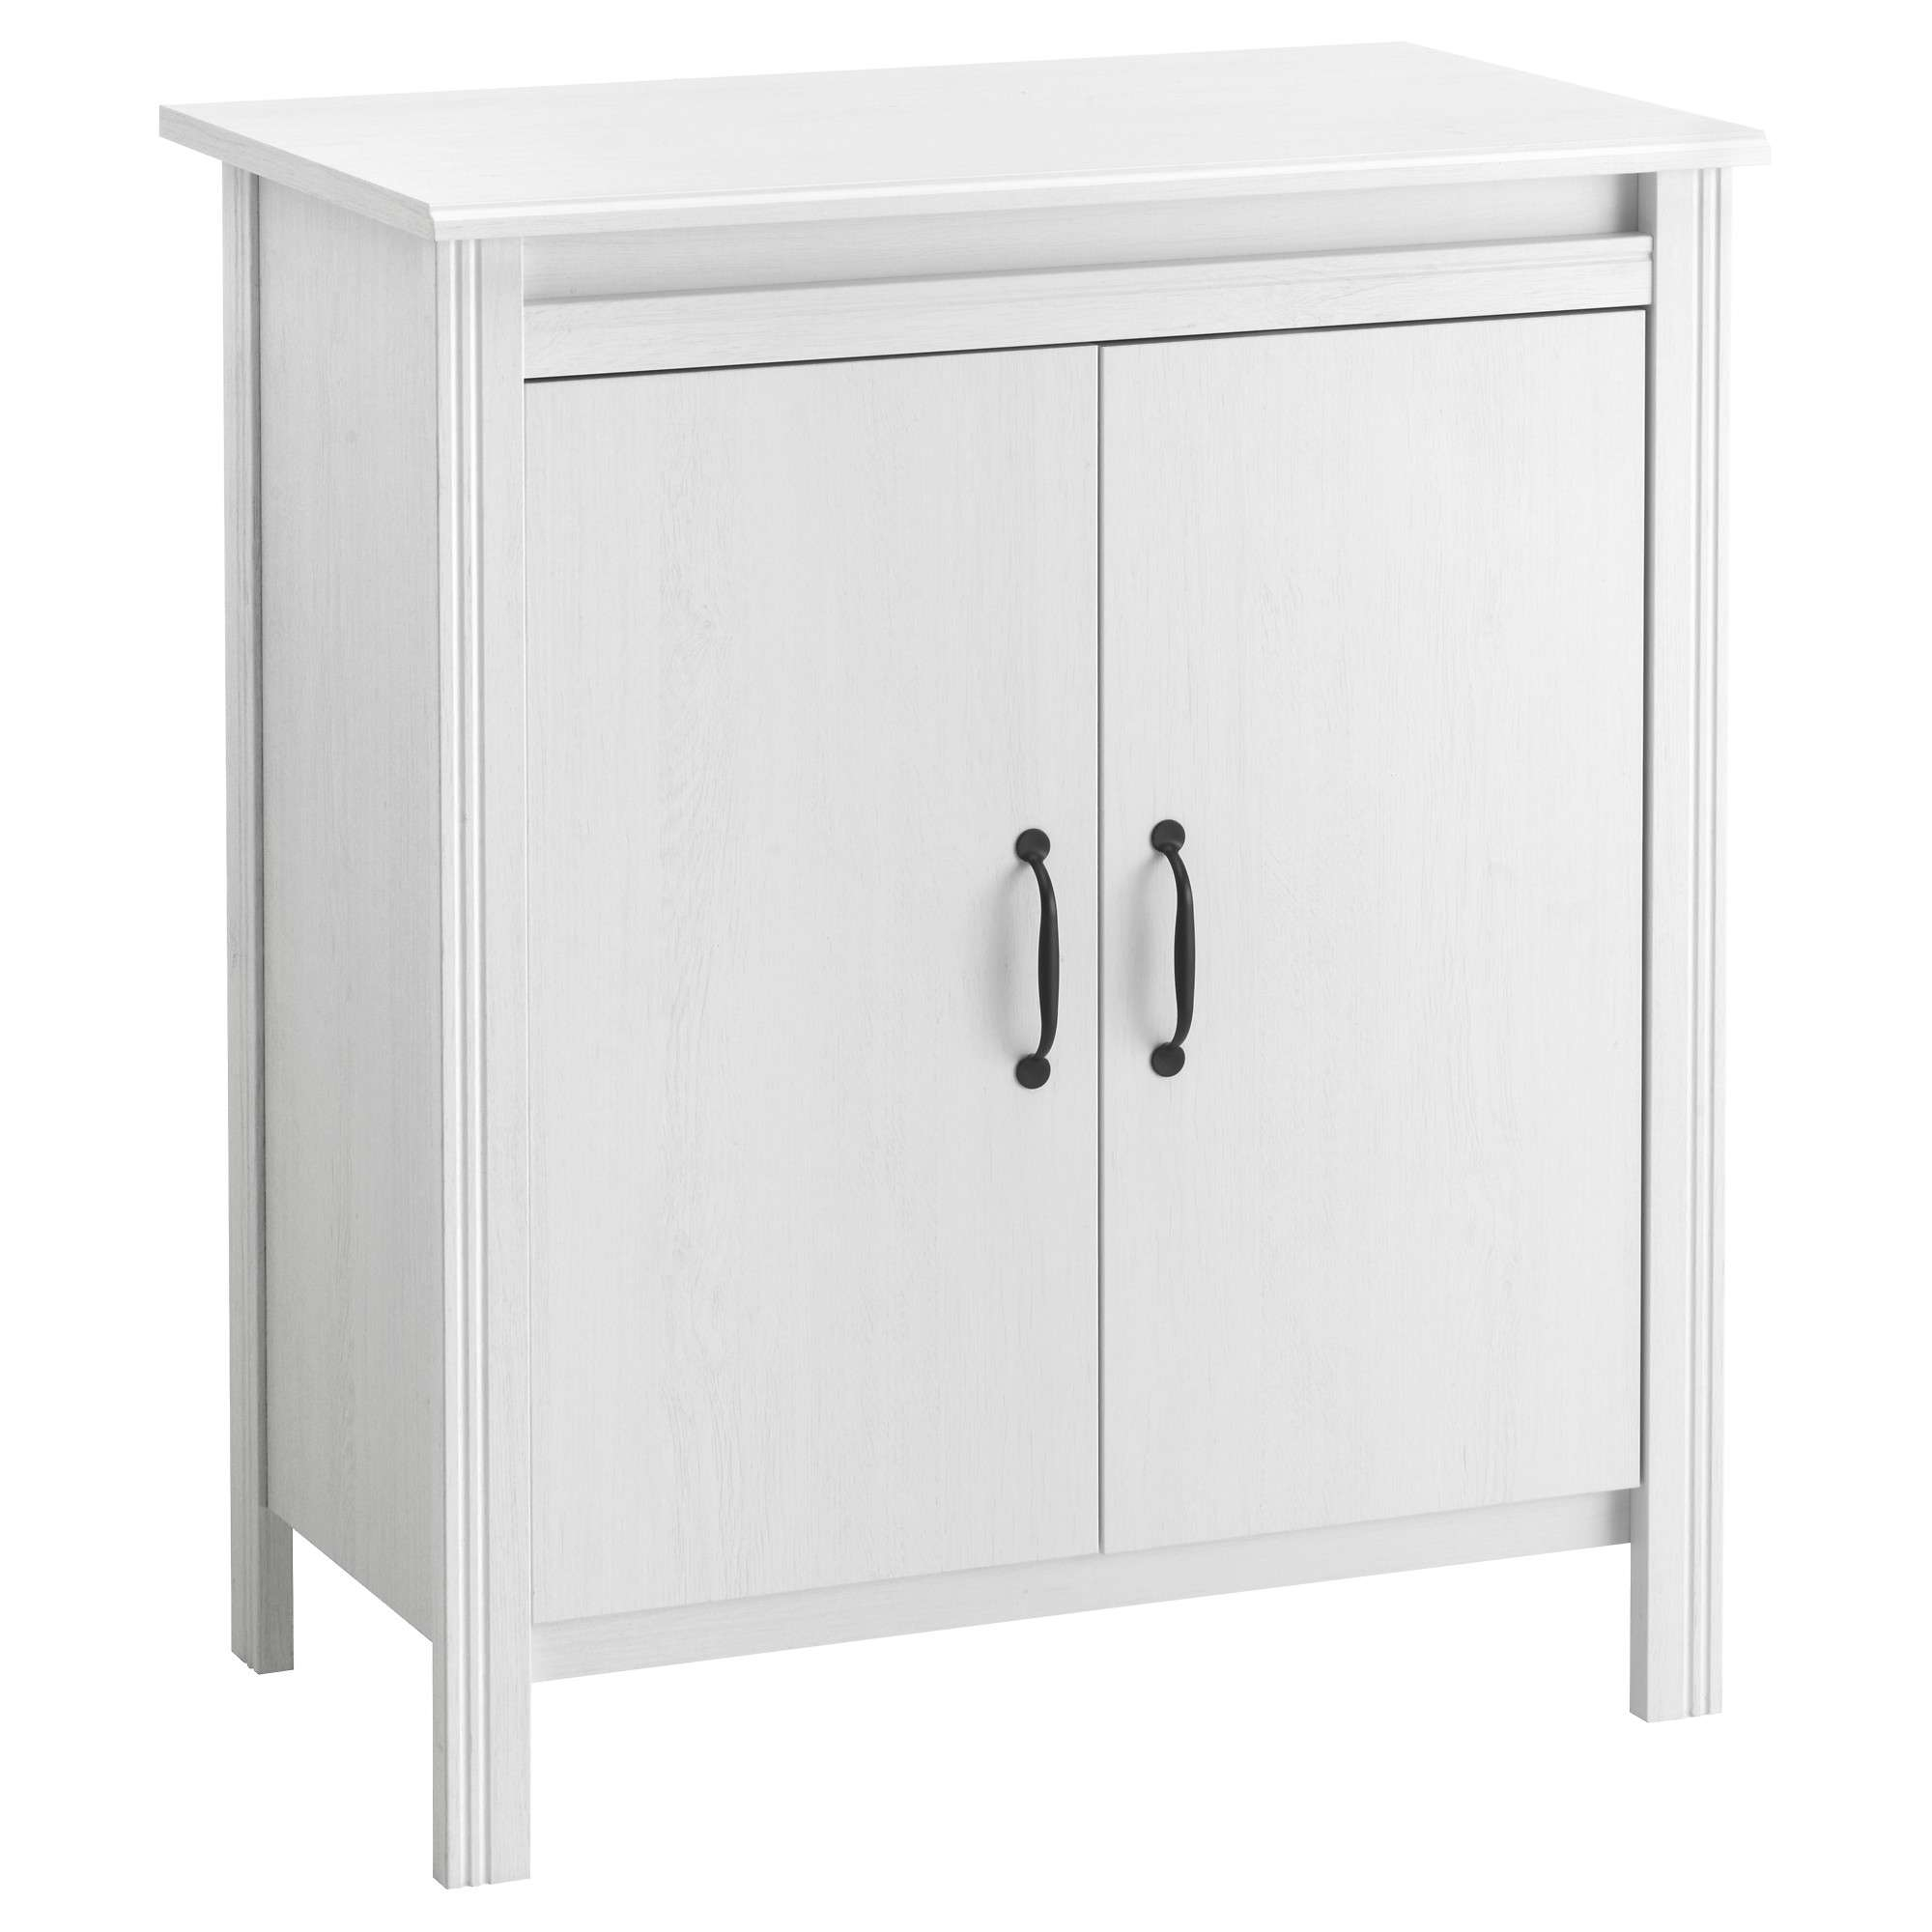 Cabinets & Sideboards – Ikea Intended For Deep Sideboards (View 13 of 20)